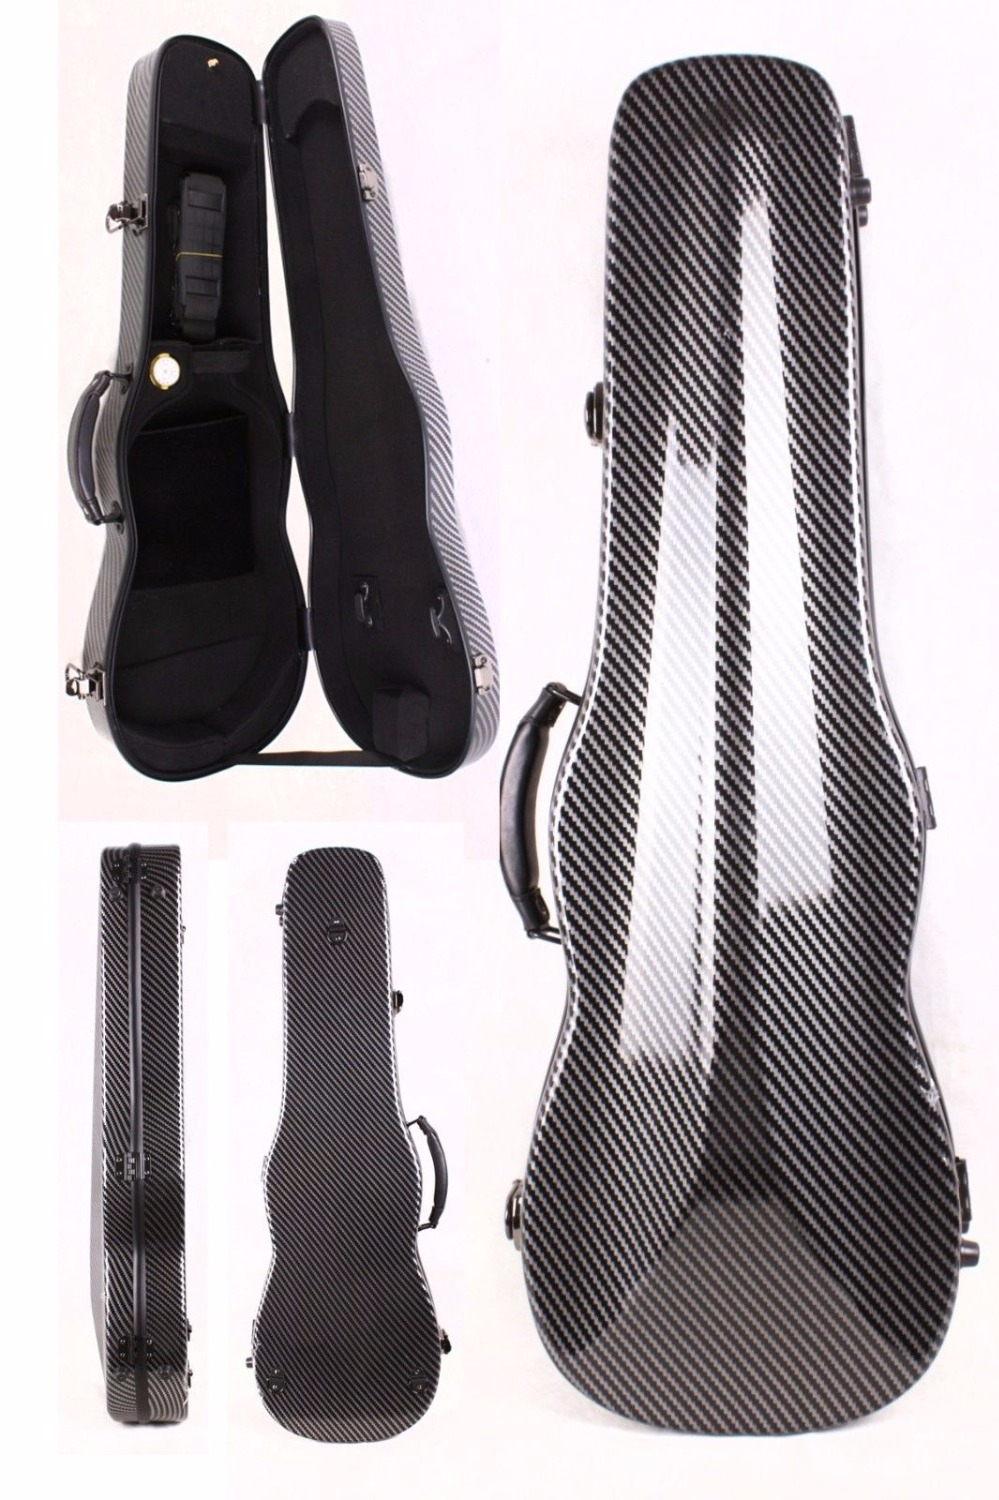 black color violin case 4/4 carbon fiber Composite materials High streng high quality violin 4 4 full size composite carbon fiber case bow holders straps